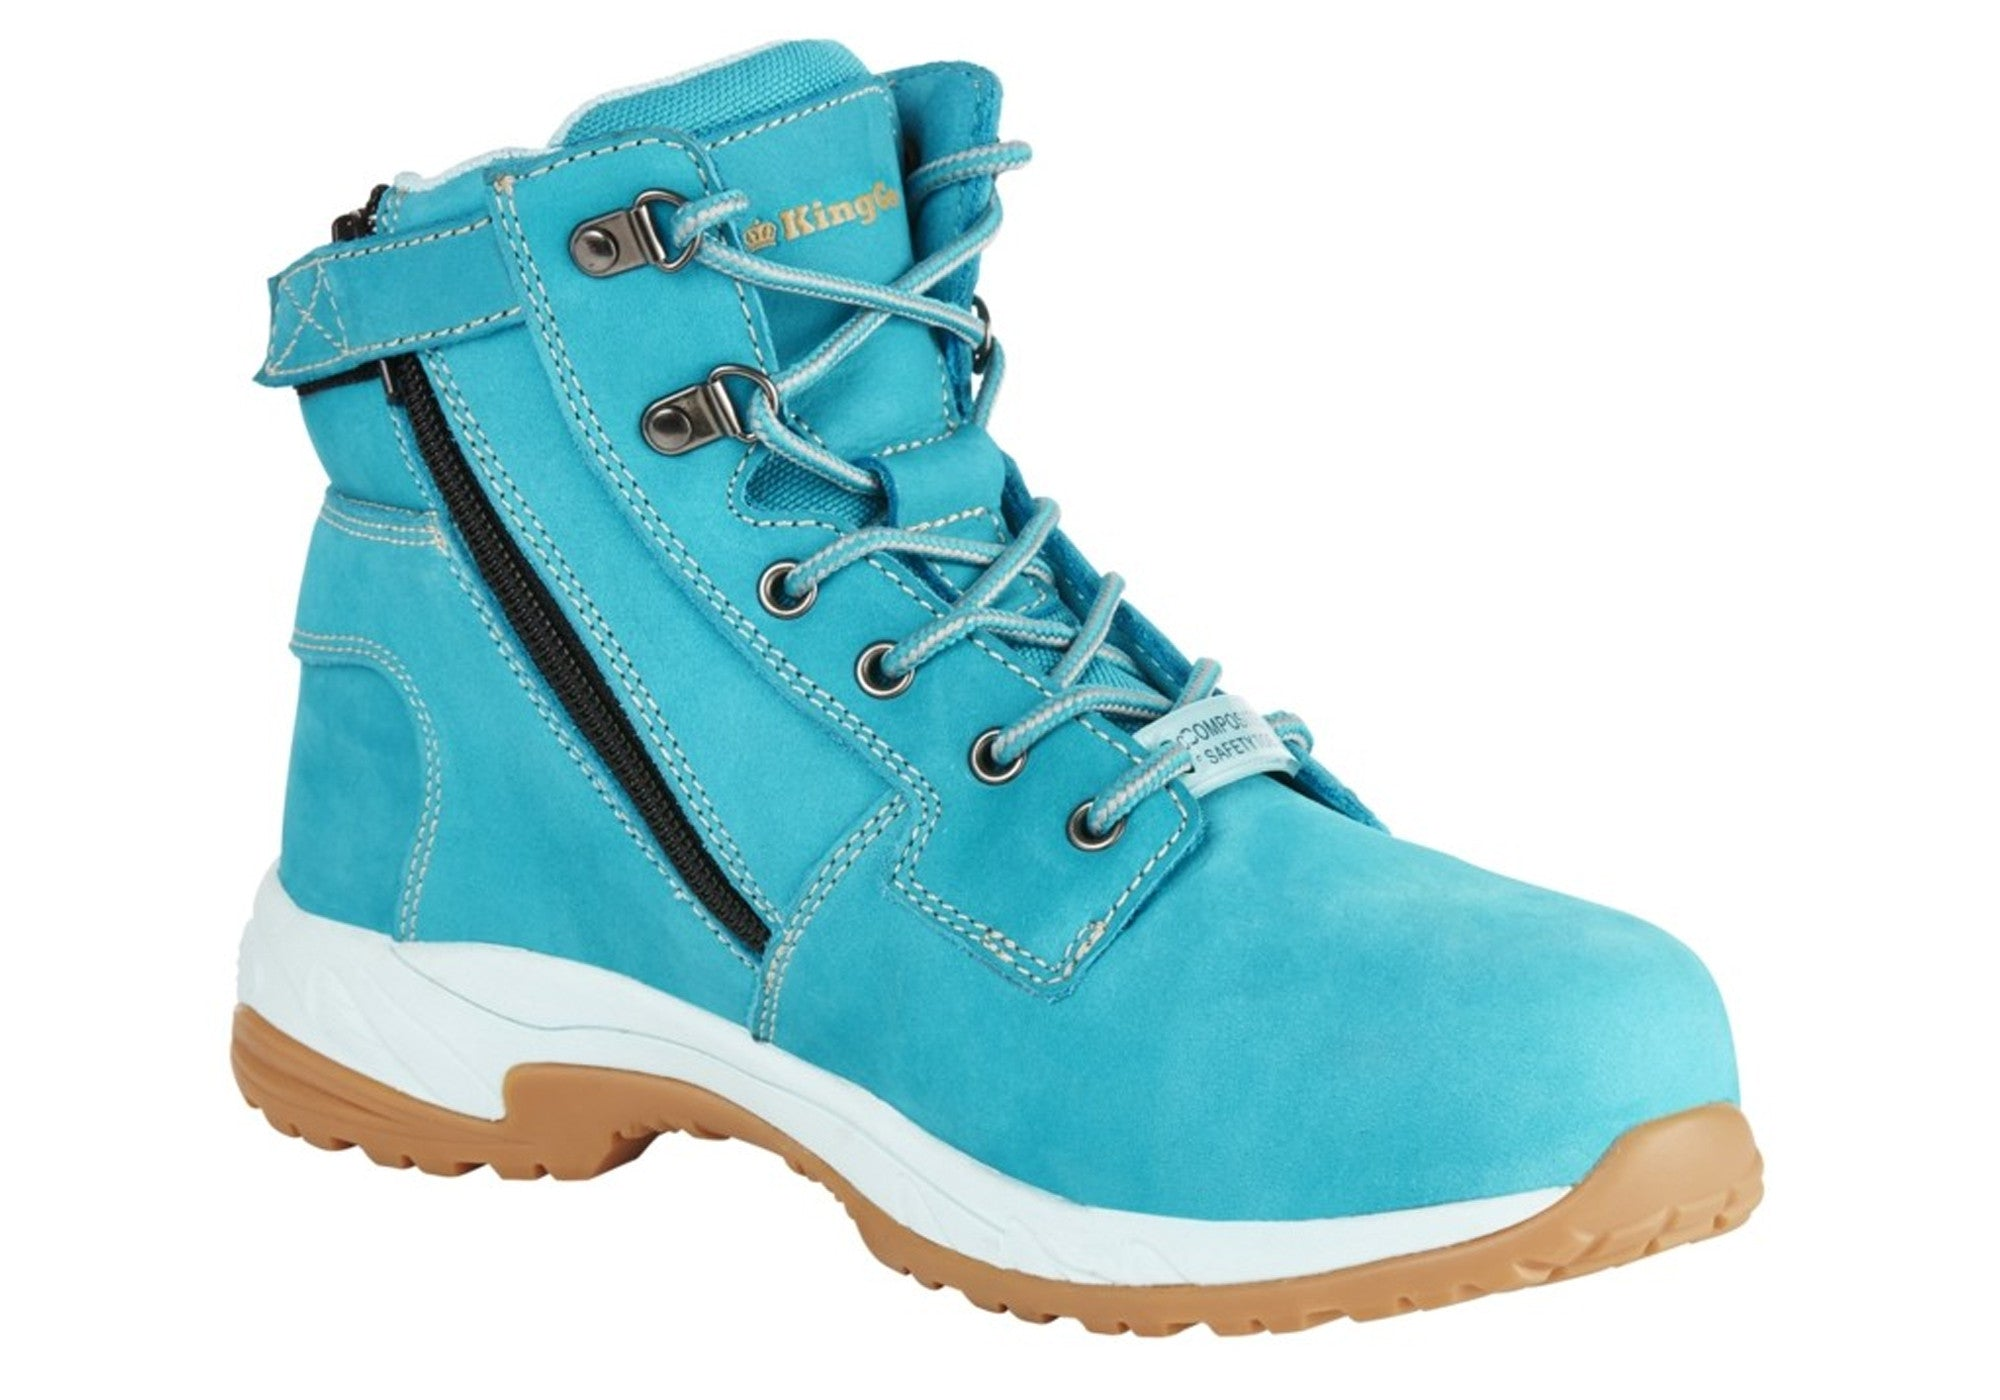 King Gee Womens Tradie Zip Work Boots